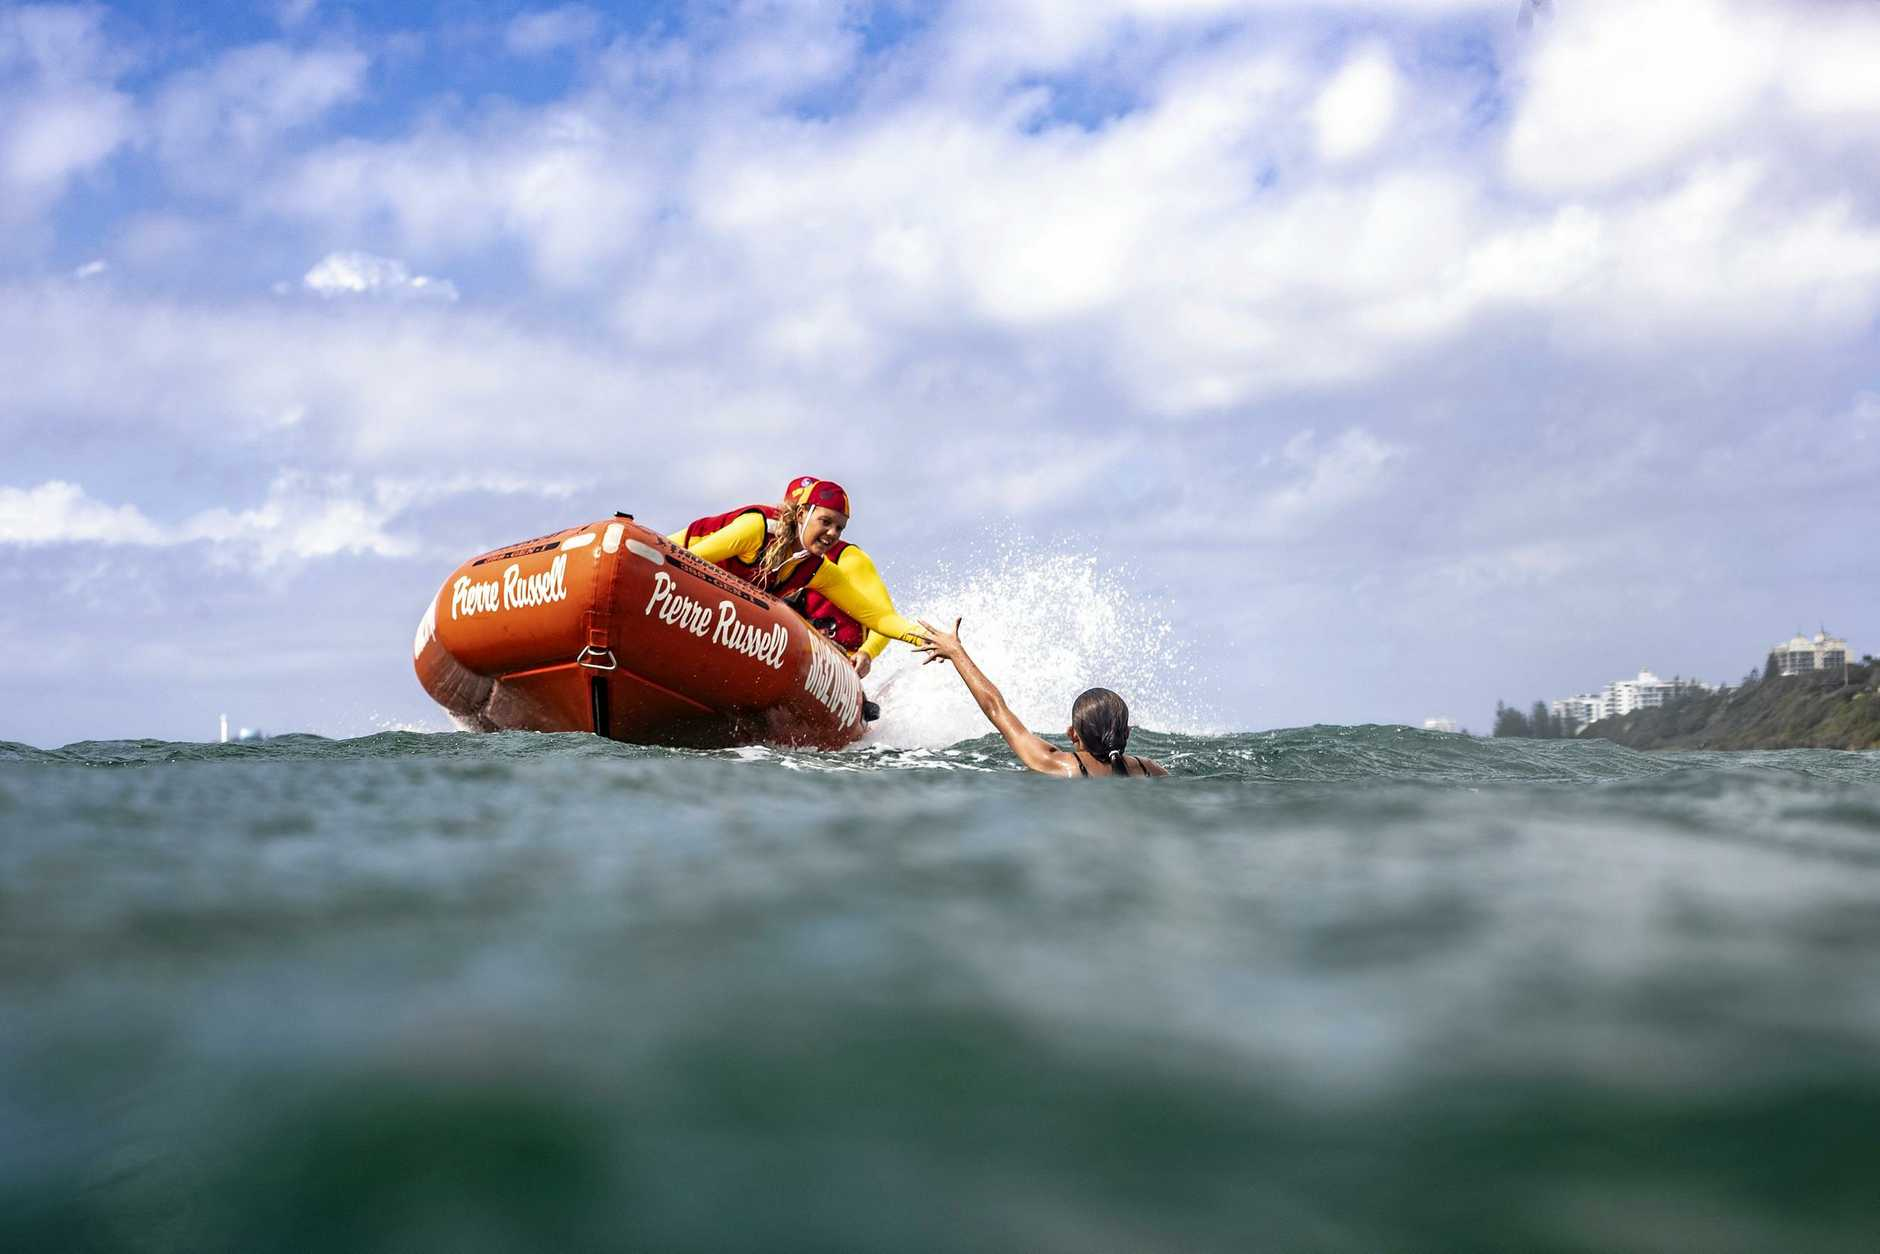 Surf lifesavers are patrolling our beaches